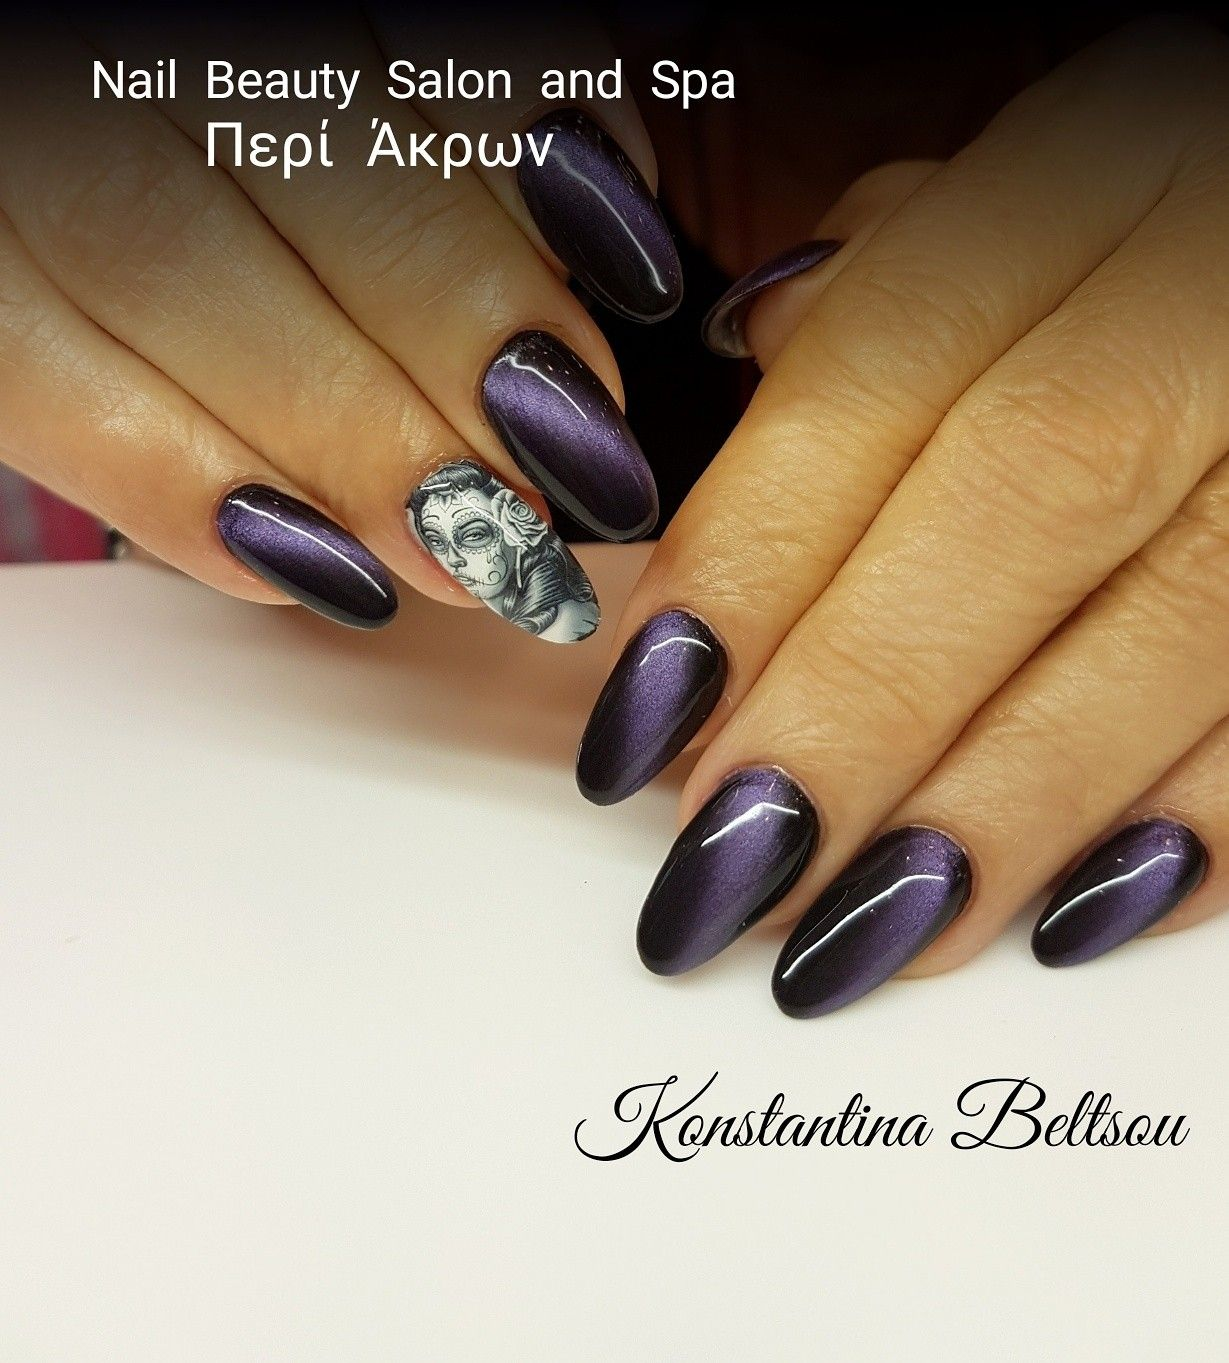 Acrylic nails, long almond nails with gel polish, cat eye effect and ...